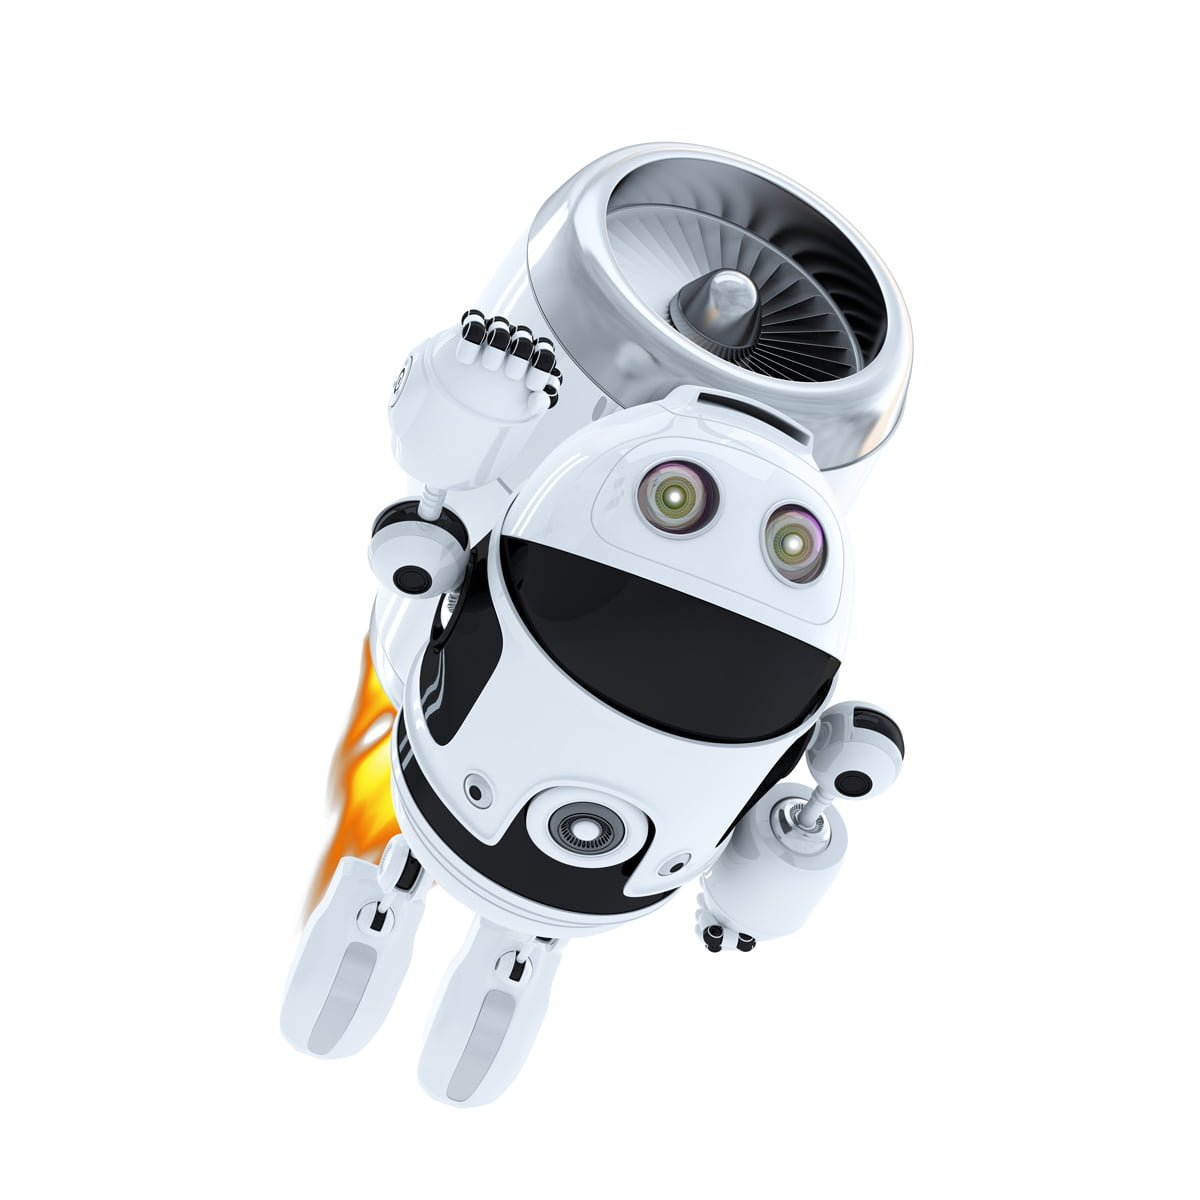 Image of robot with a rocket